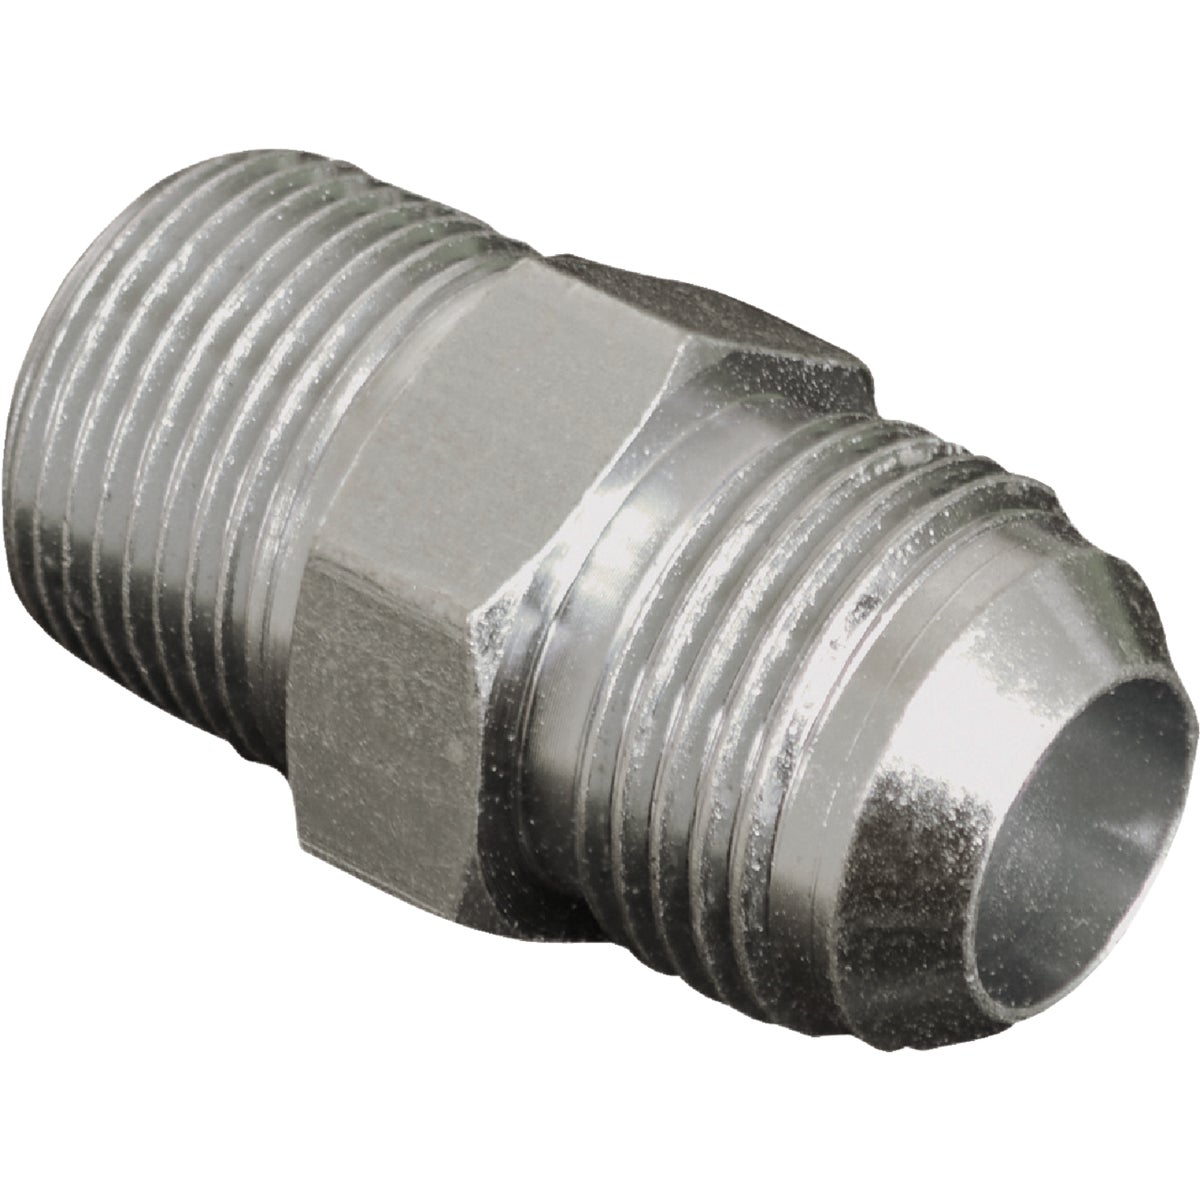 3/8MJICX1/2M HYD ADAPTER - 39006450 by Apache Hose Belting